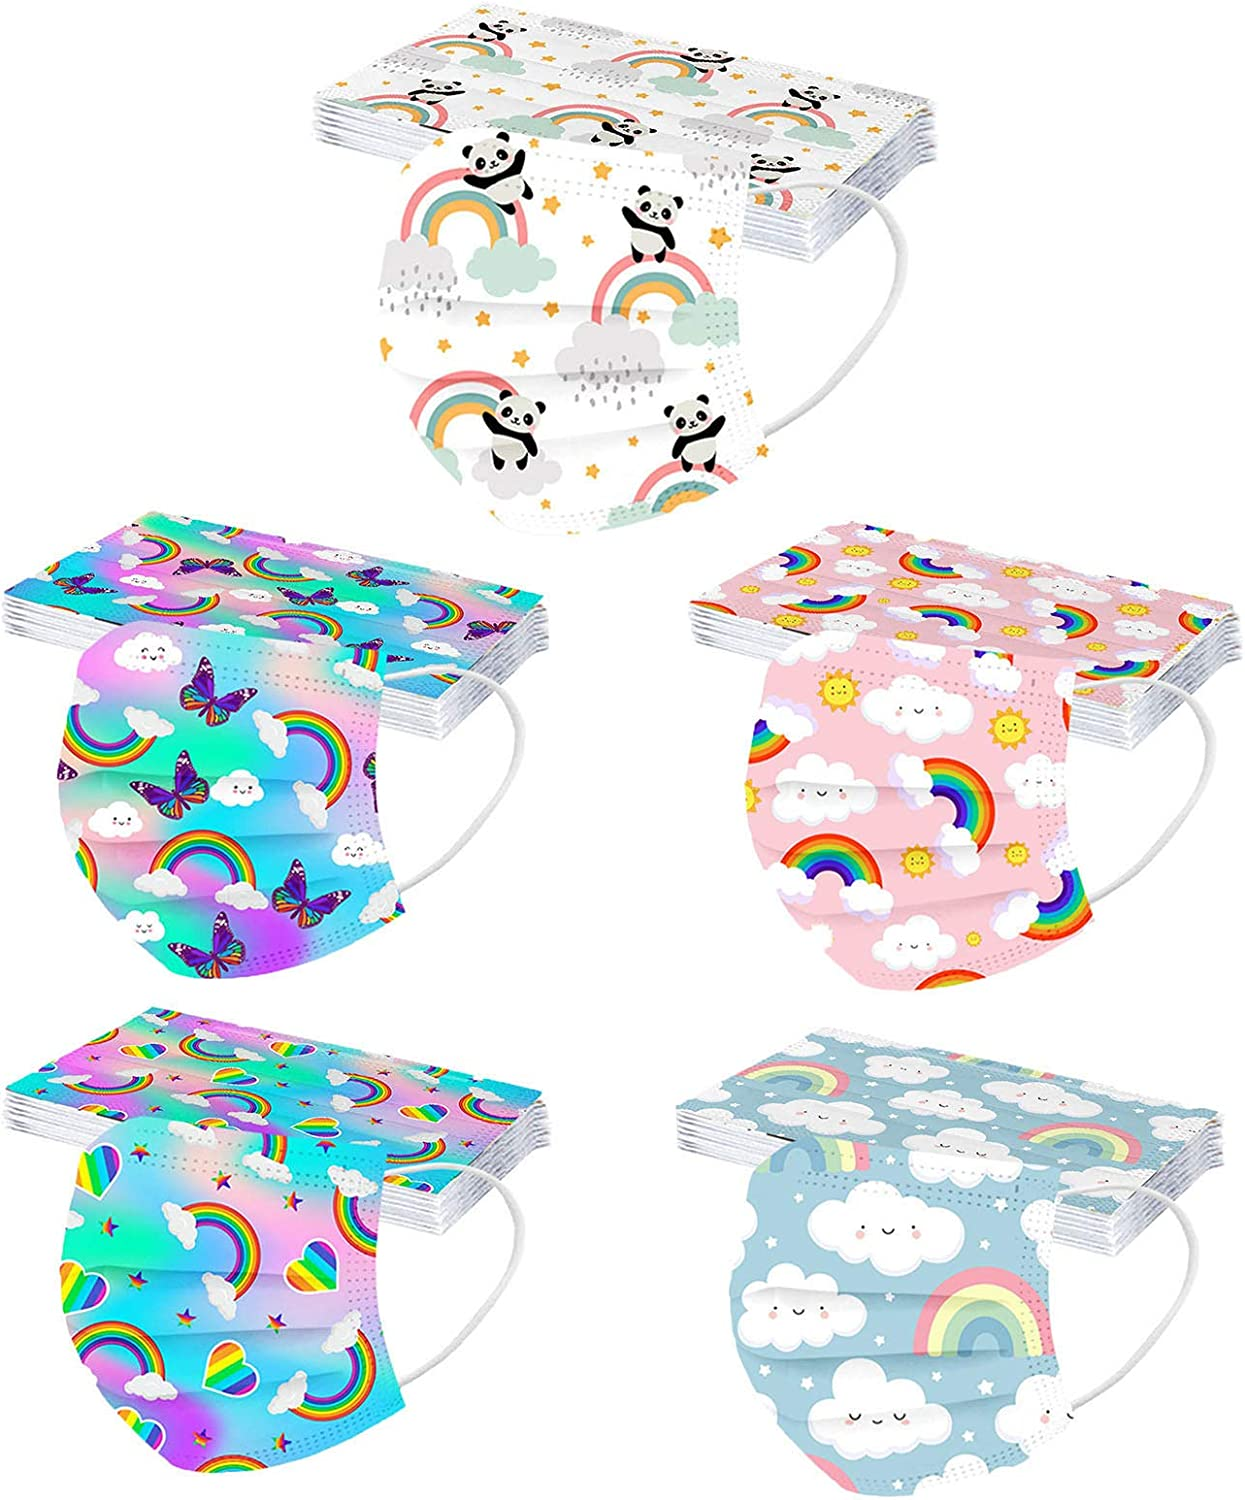 Be super welcome 50 Pcs Kids Disposable_Face_Masks Boys Spac Protection Seattle Mall Girls for